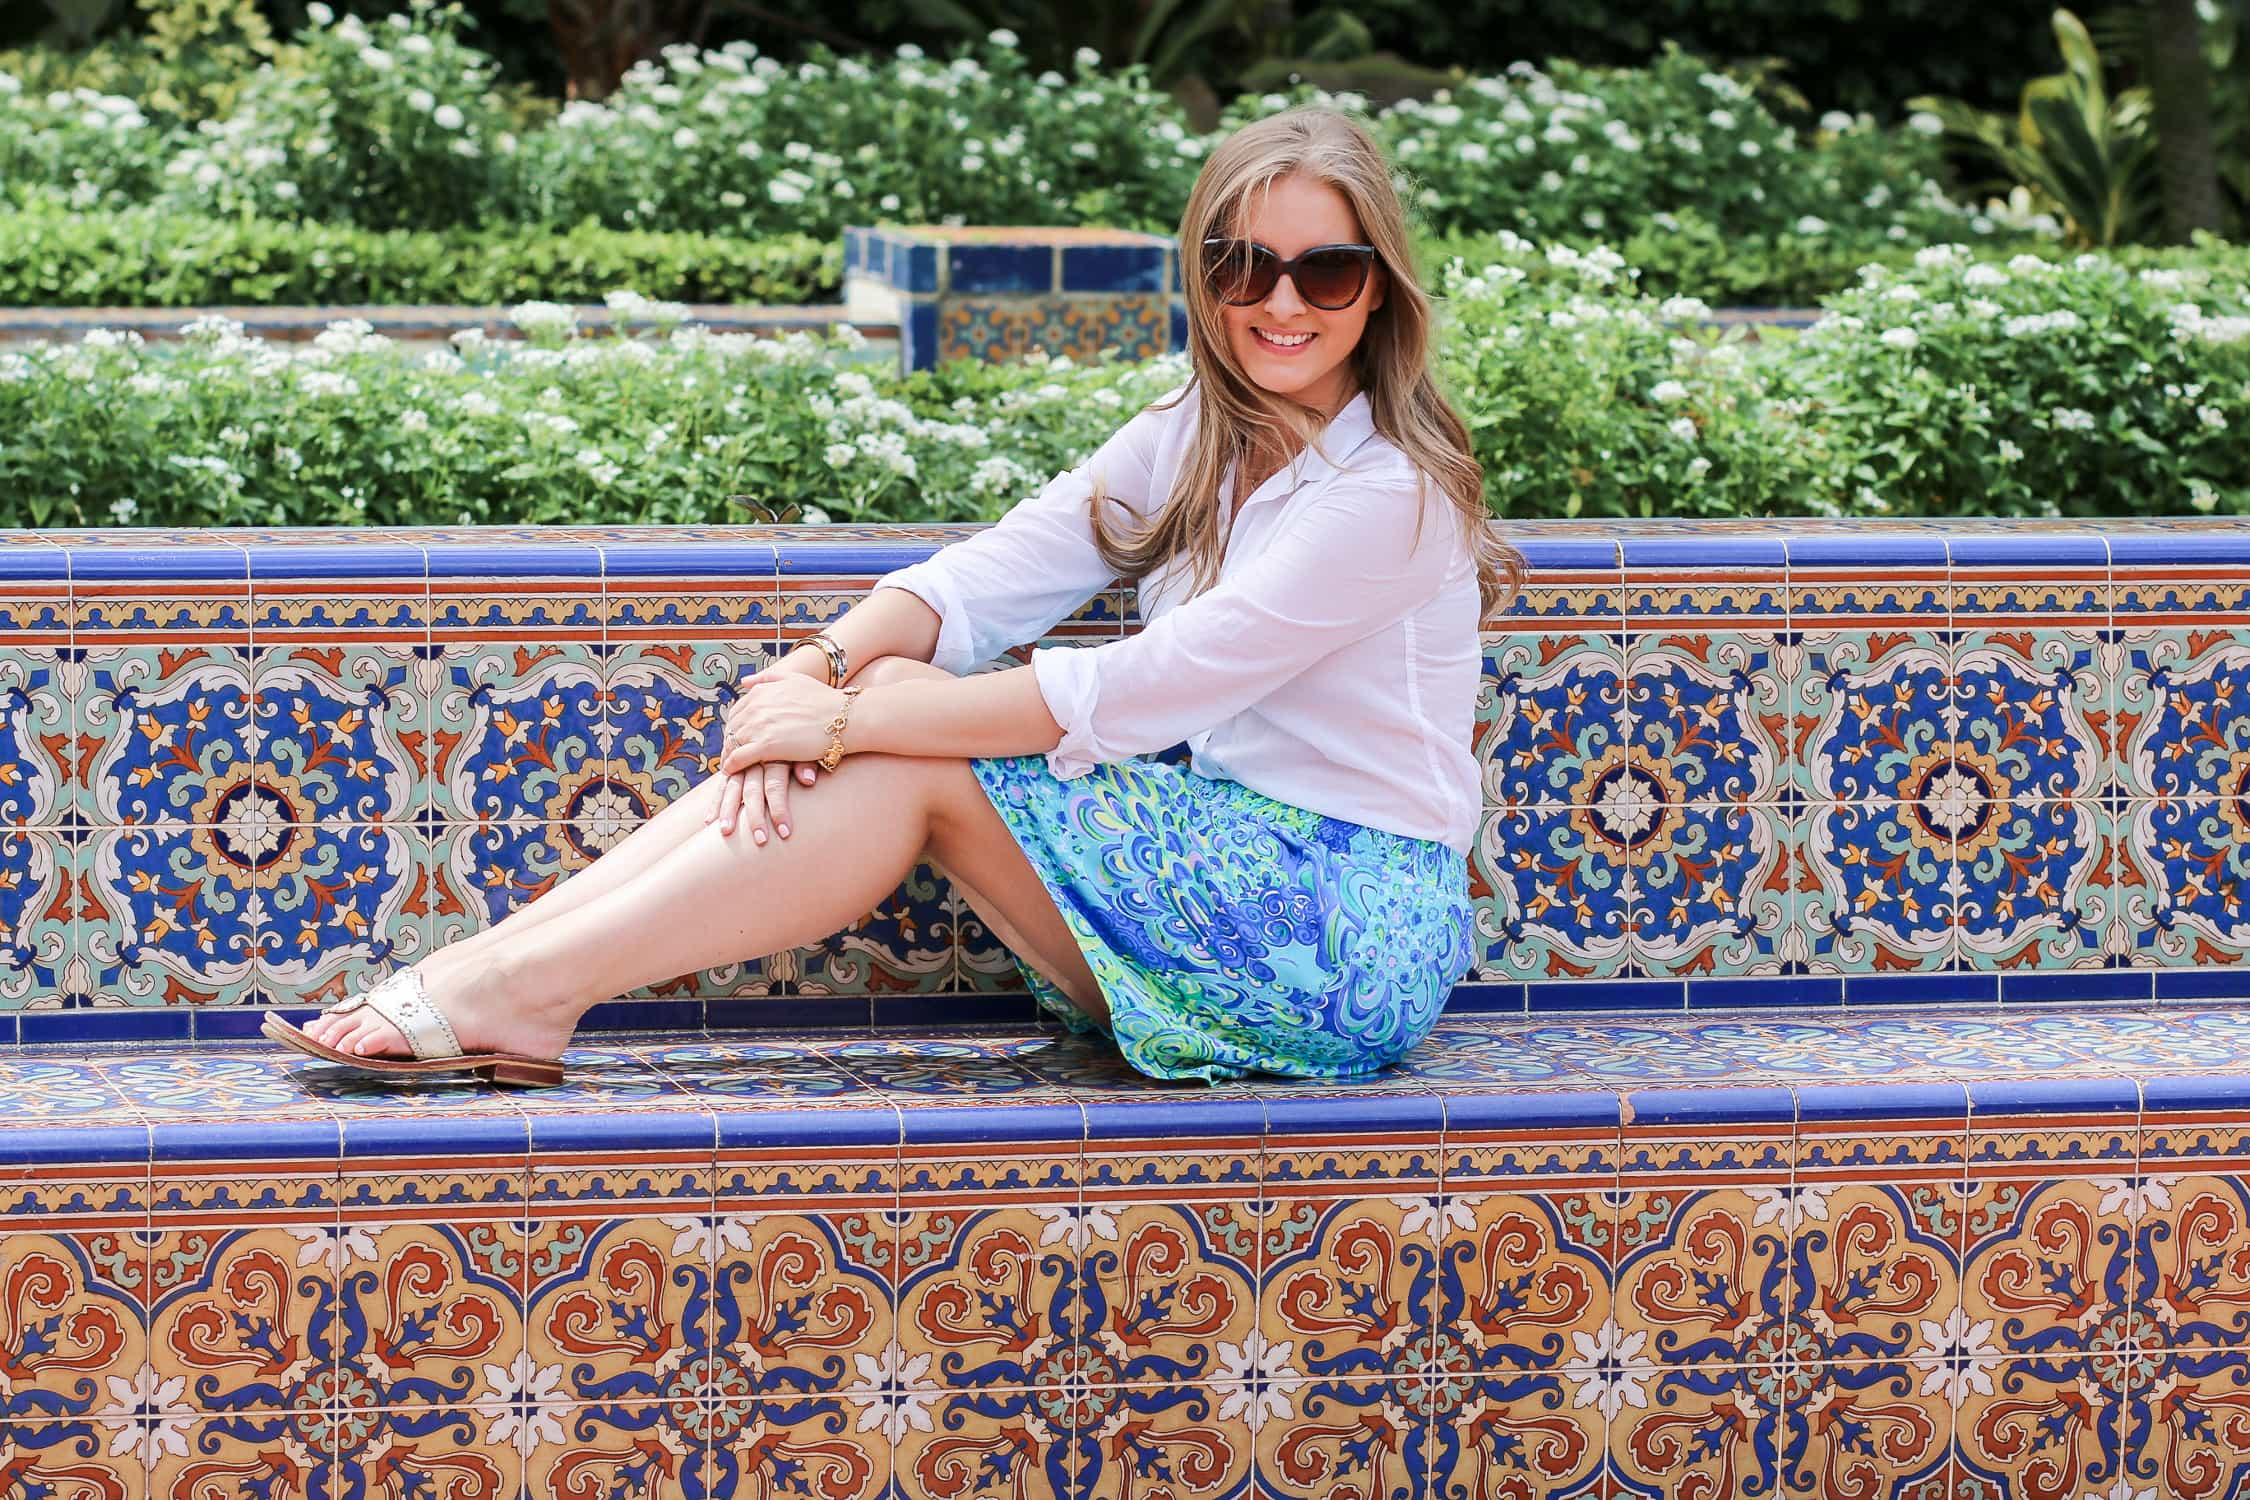 Lilly Pulitzer skirt and white button-down shirt + A full review of the Boca Raton Resort & Club by blogger Ashley Brooke Nicholas